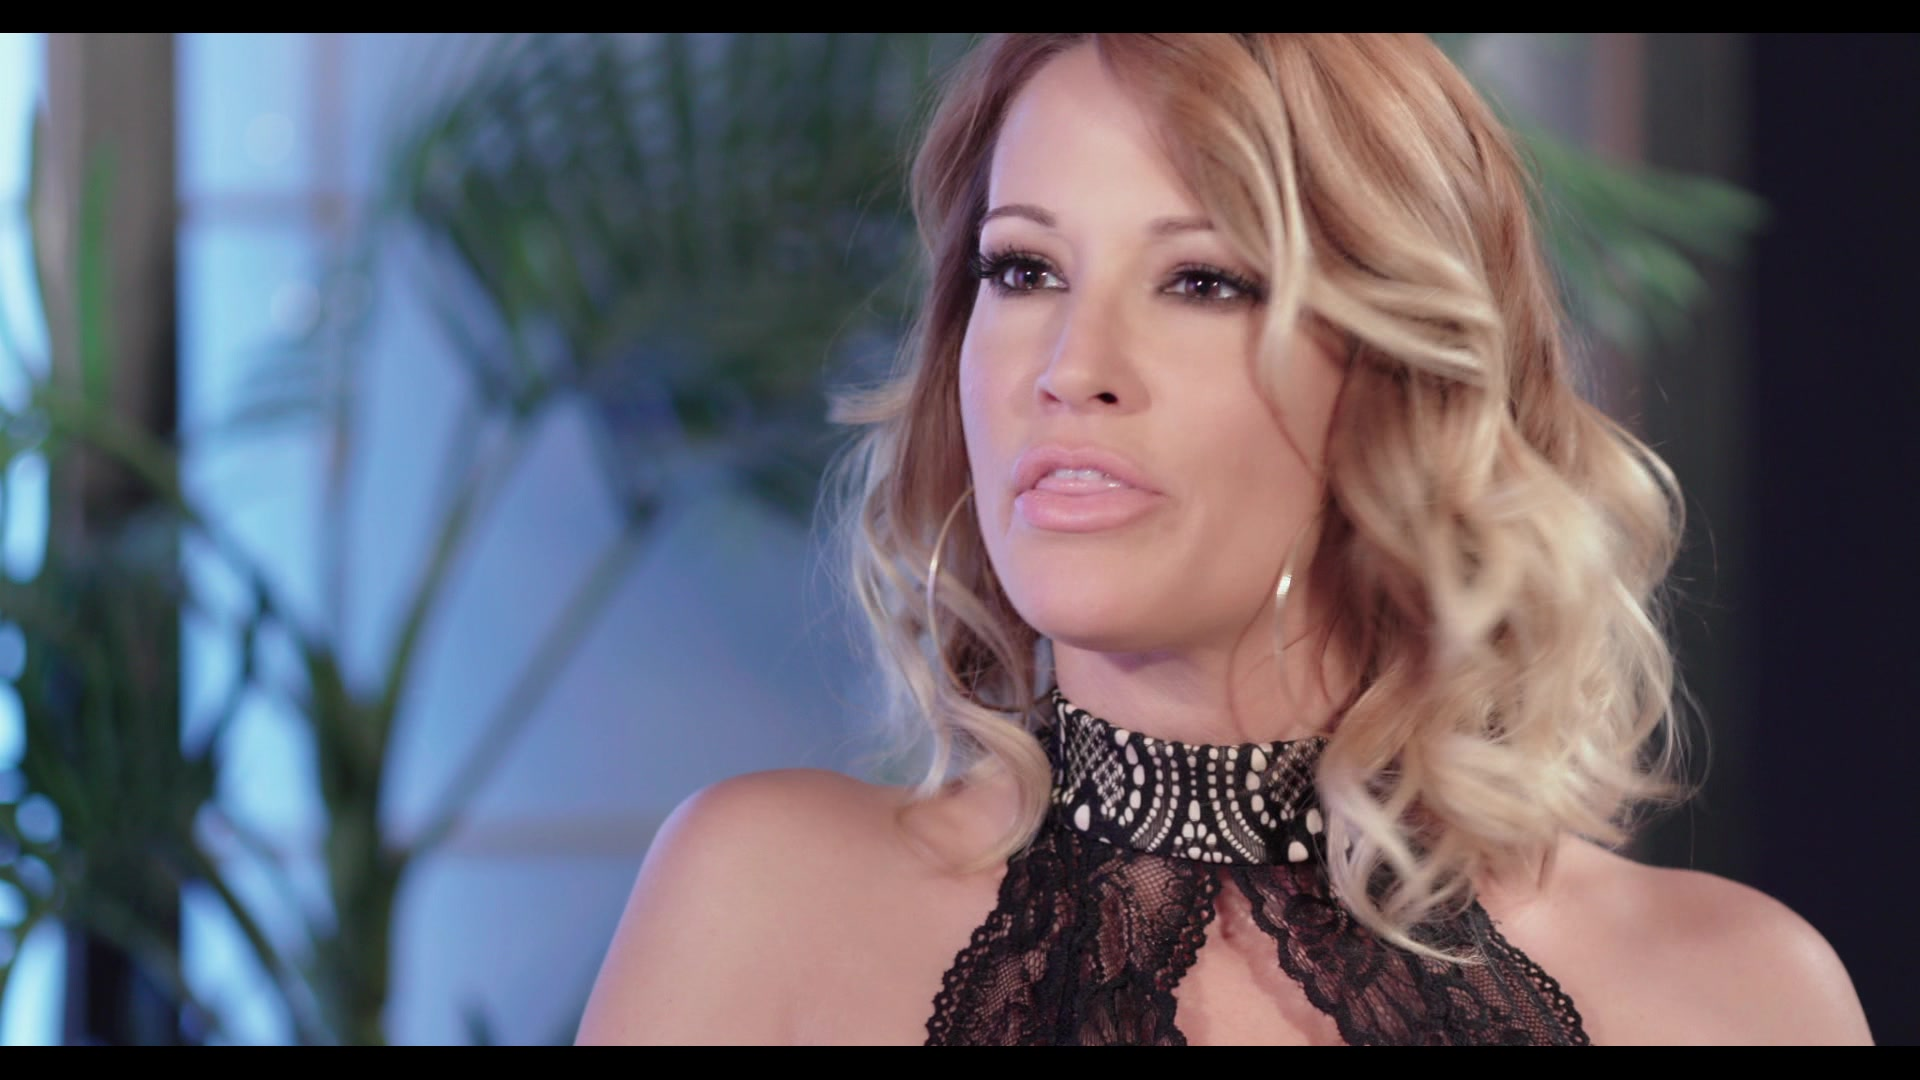 Scene with Jessica Drake, Derrick Pierce and Katrina Jade - image 3 out of 20